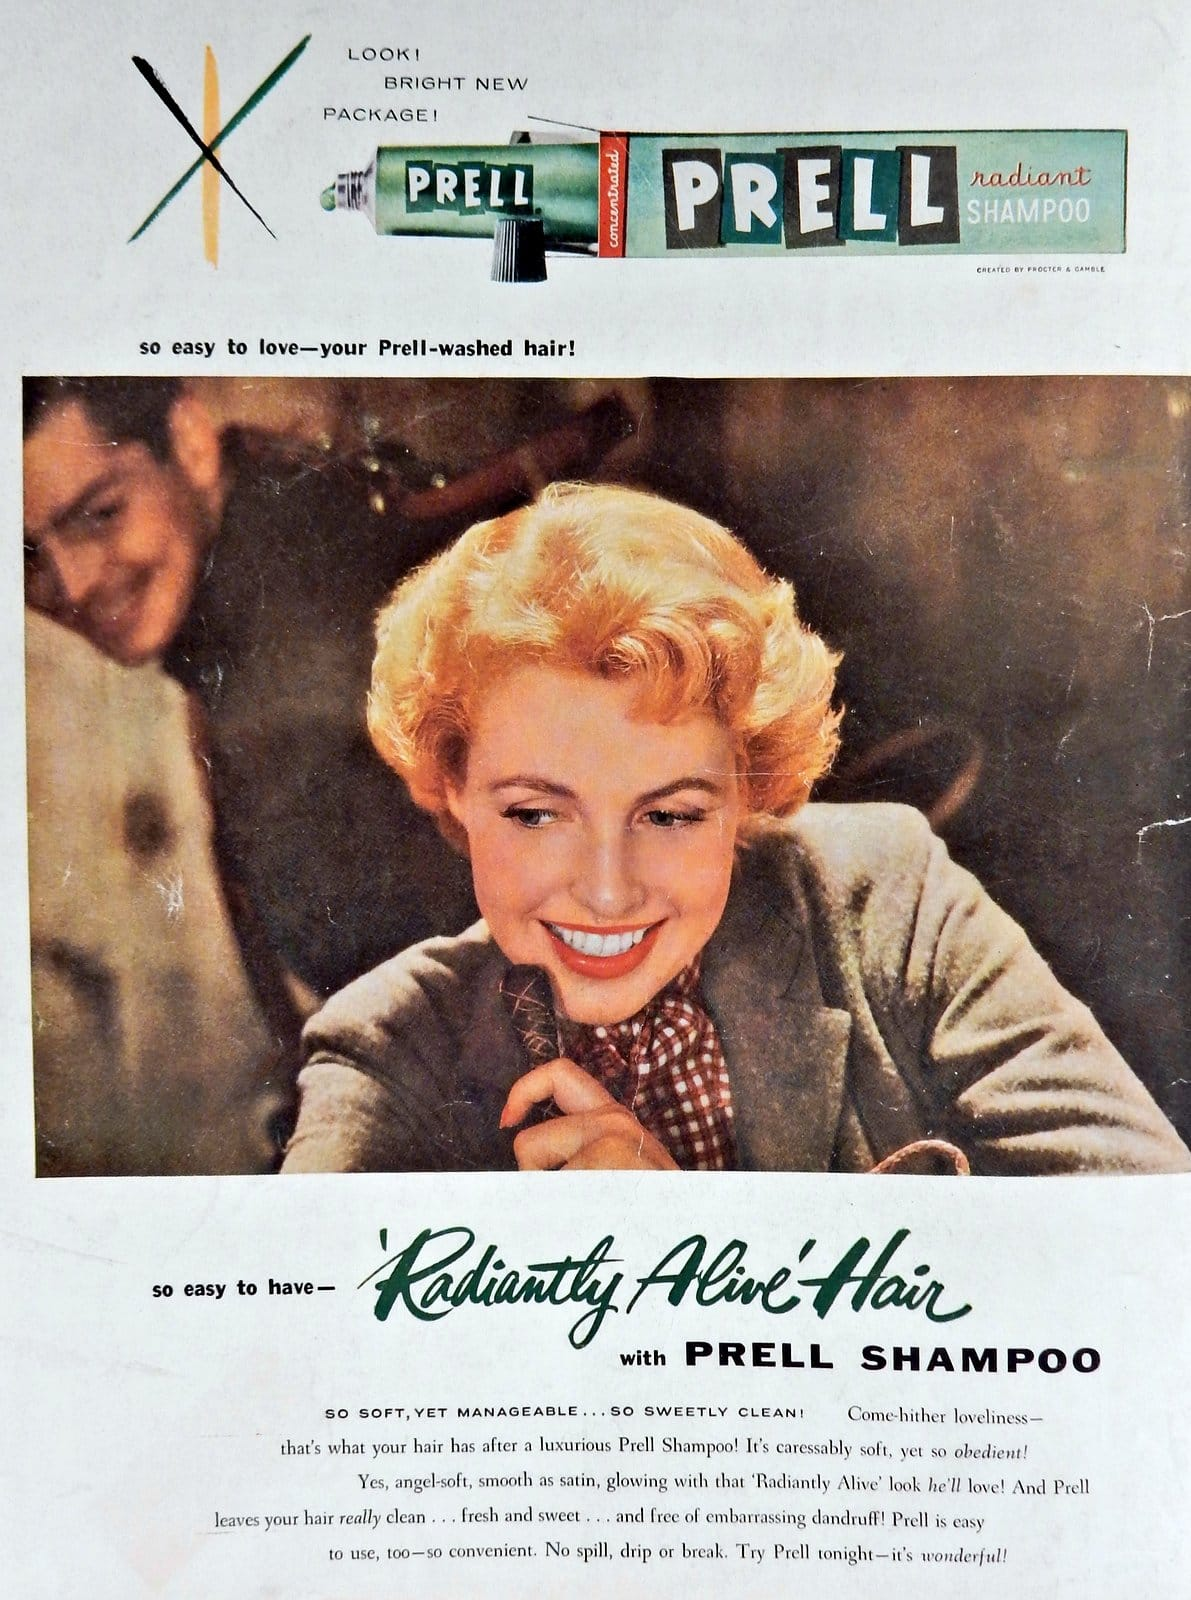 1954 - Prell shampoo for radiantly alive hair